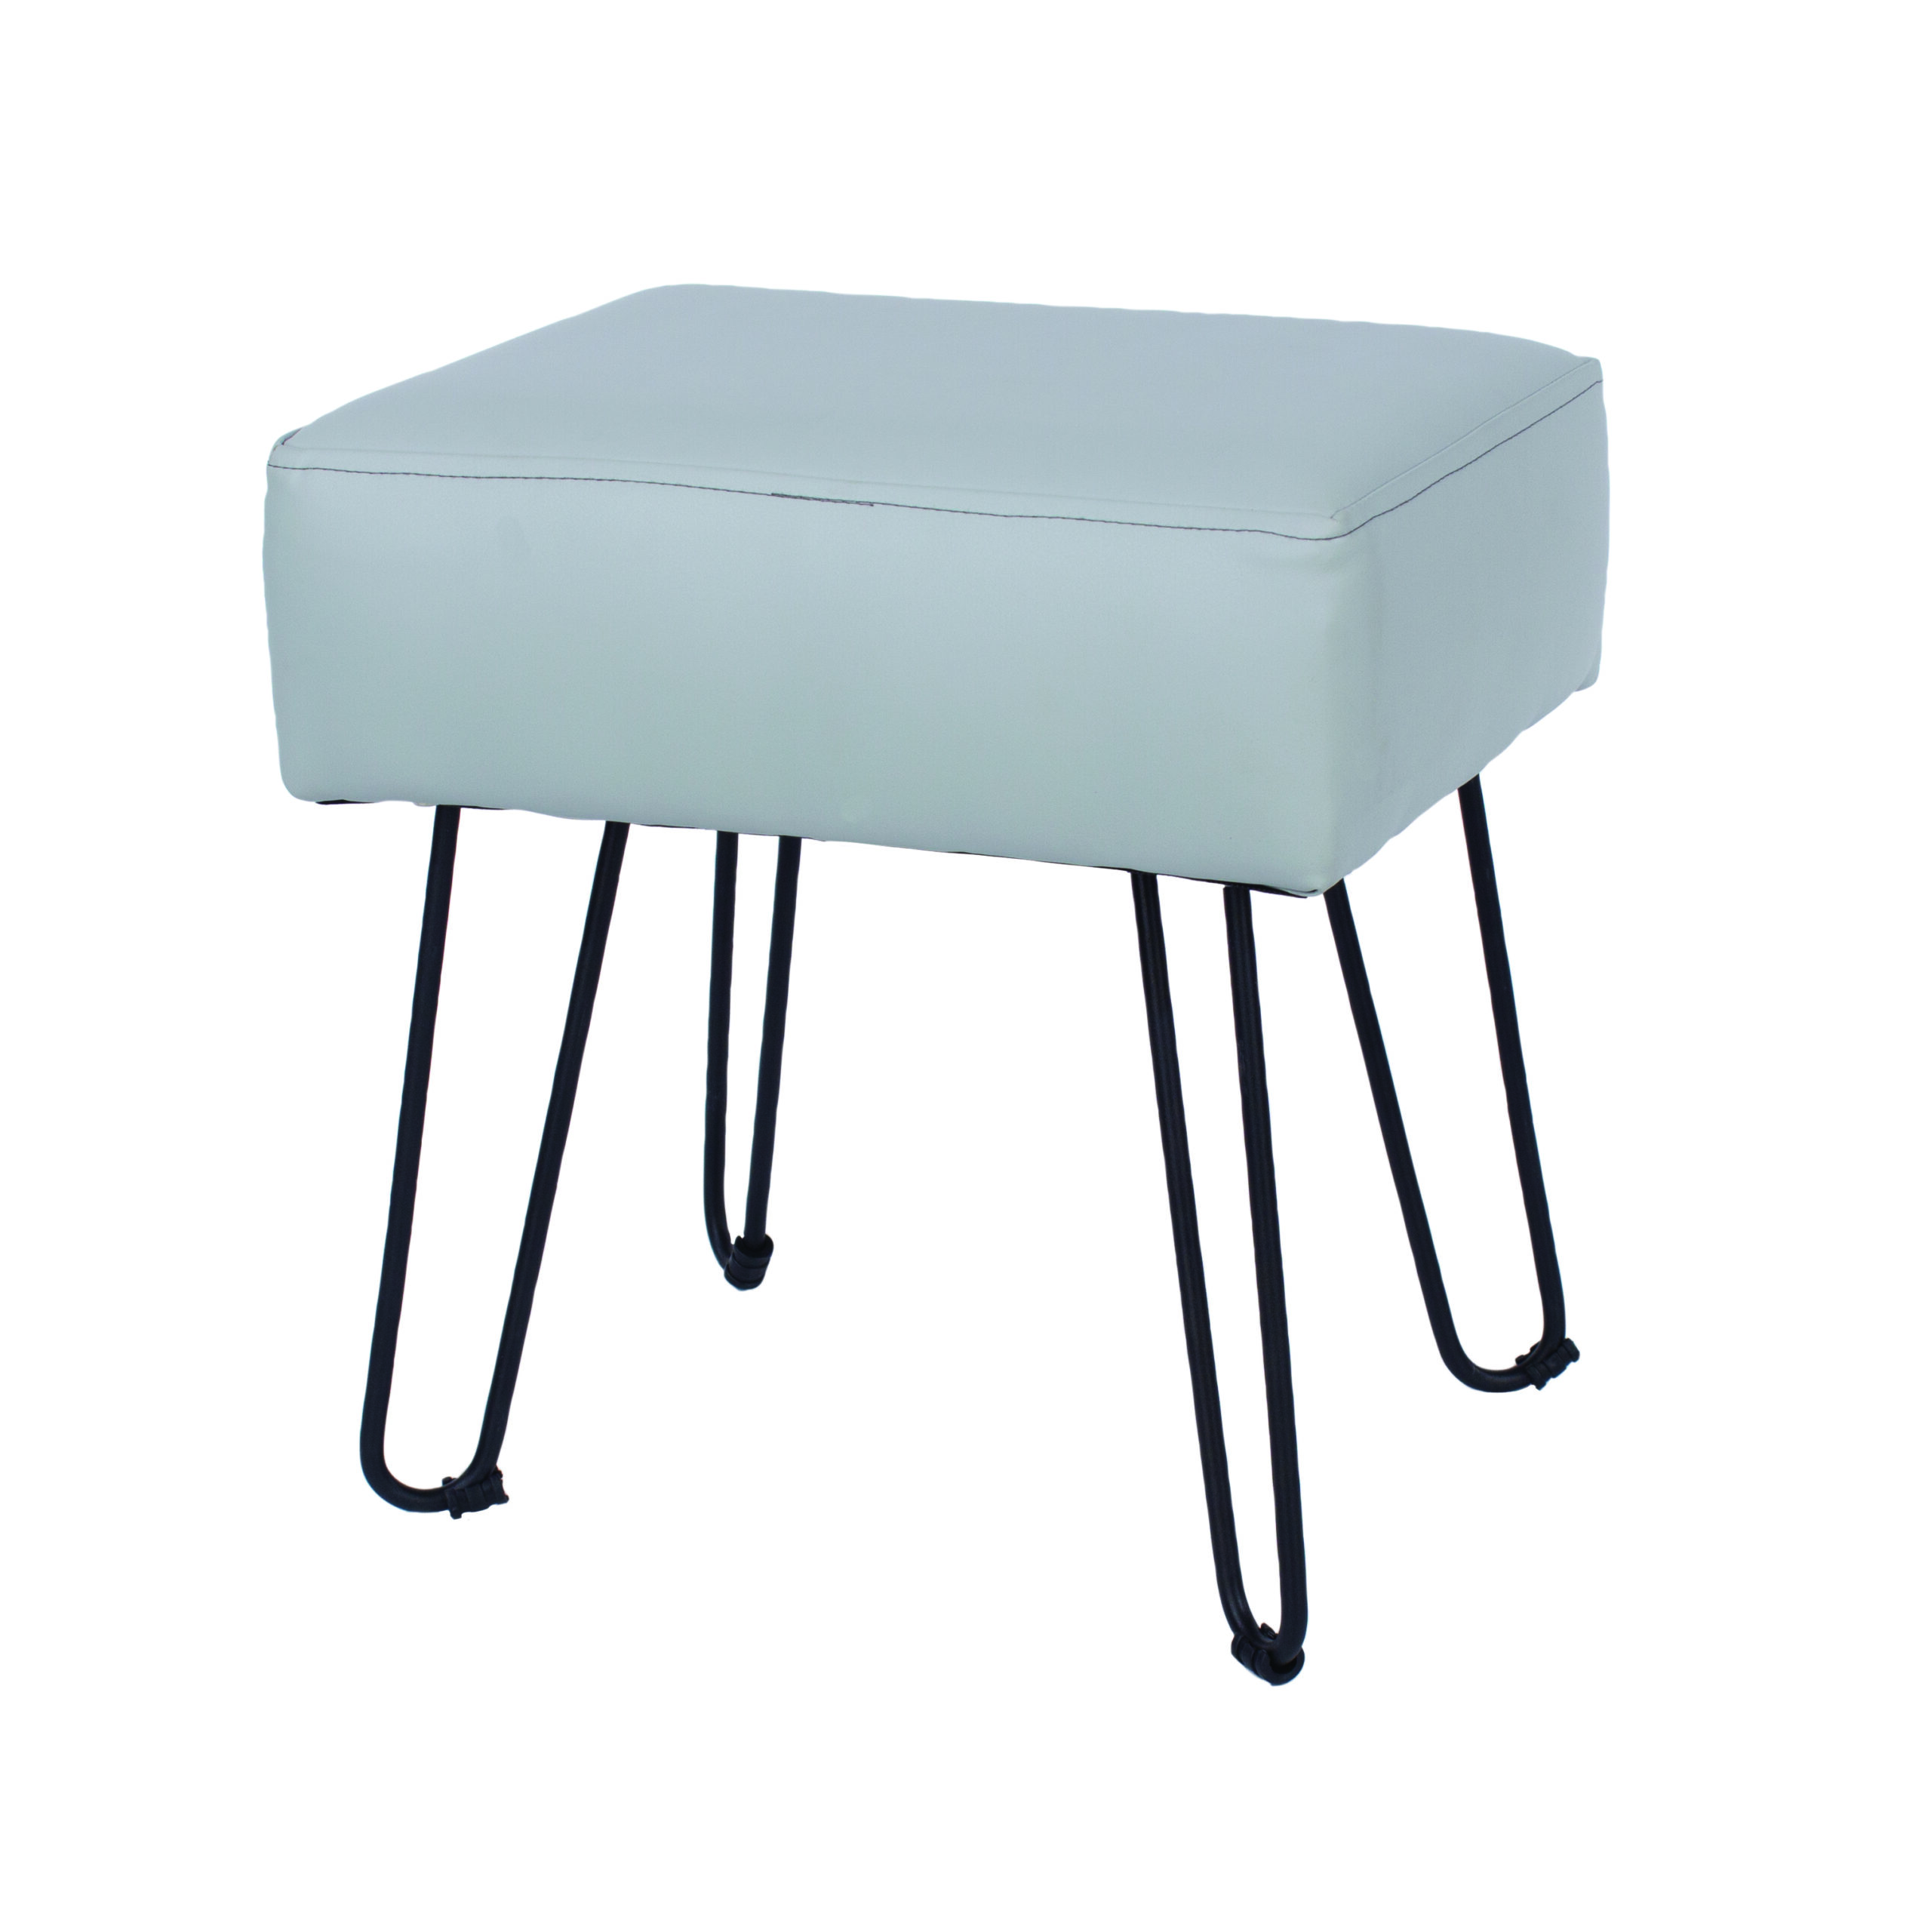 Furry grey PU upholstered rectangular stool with black metal legs